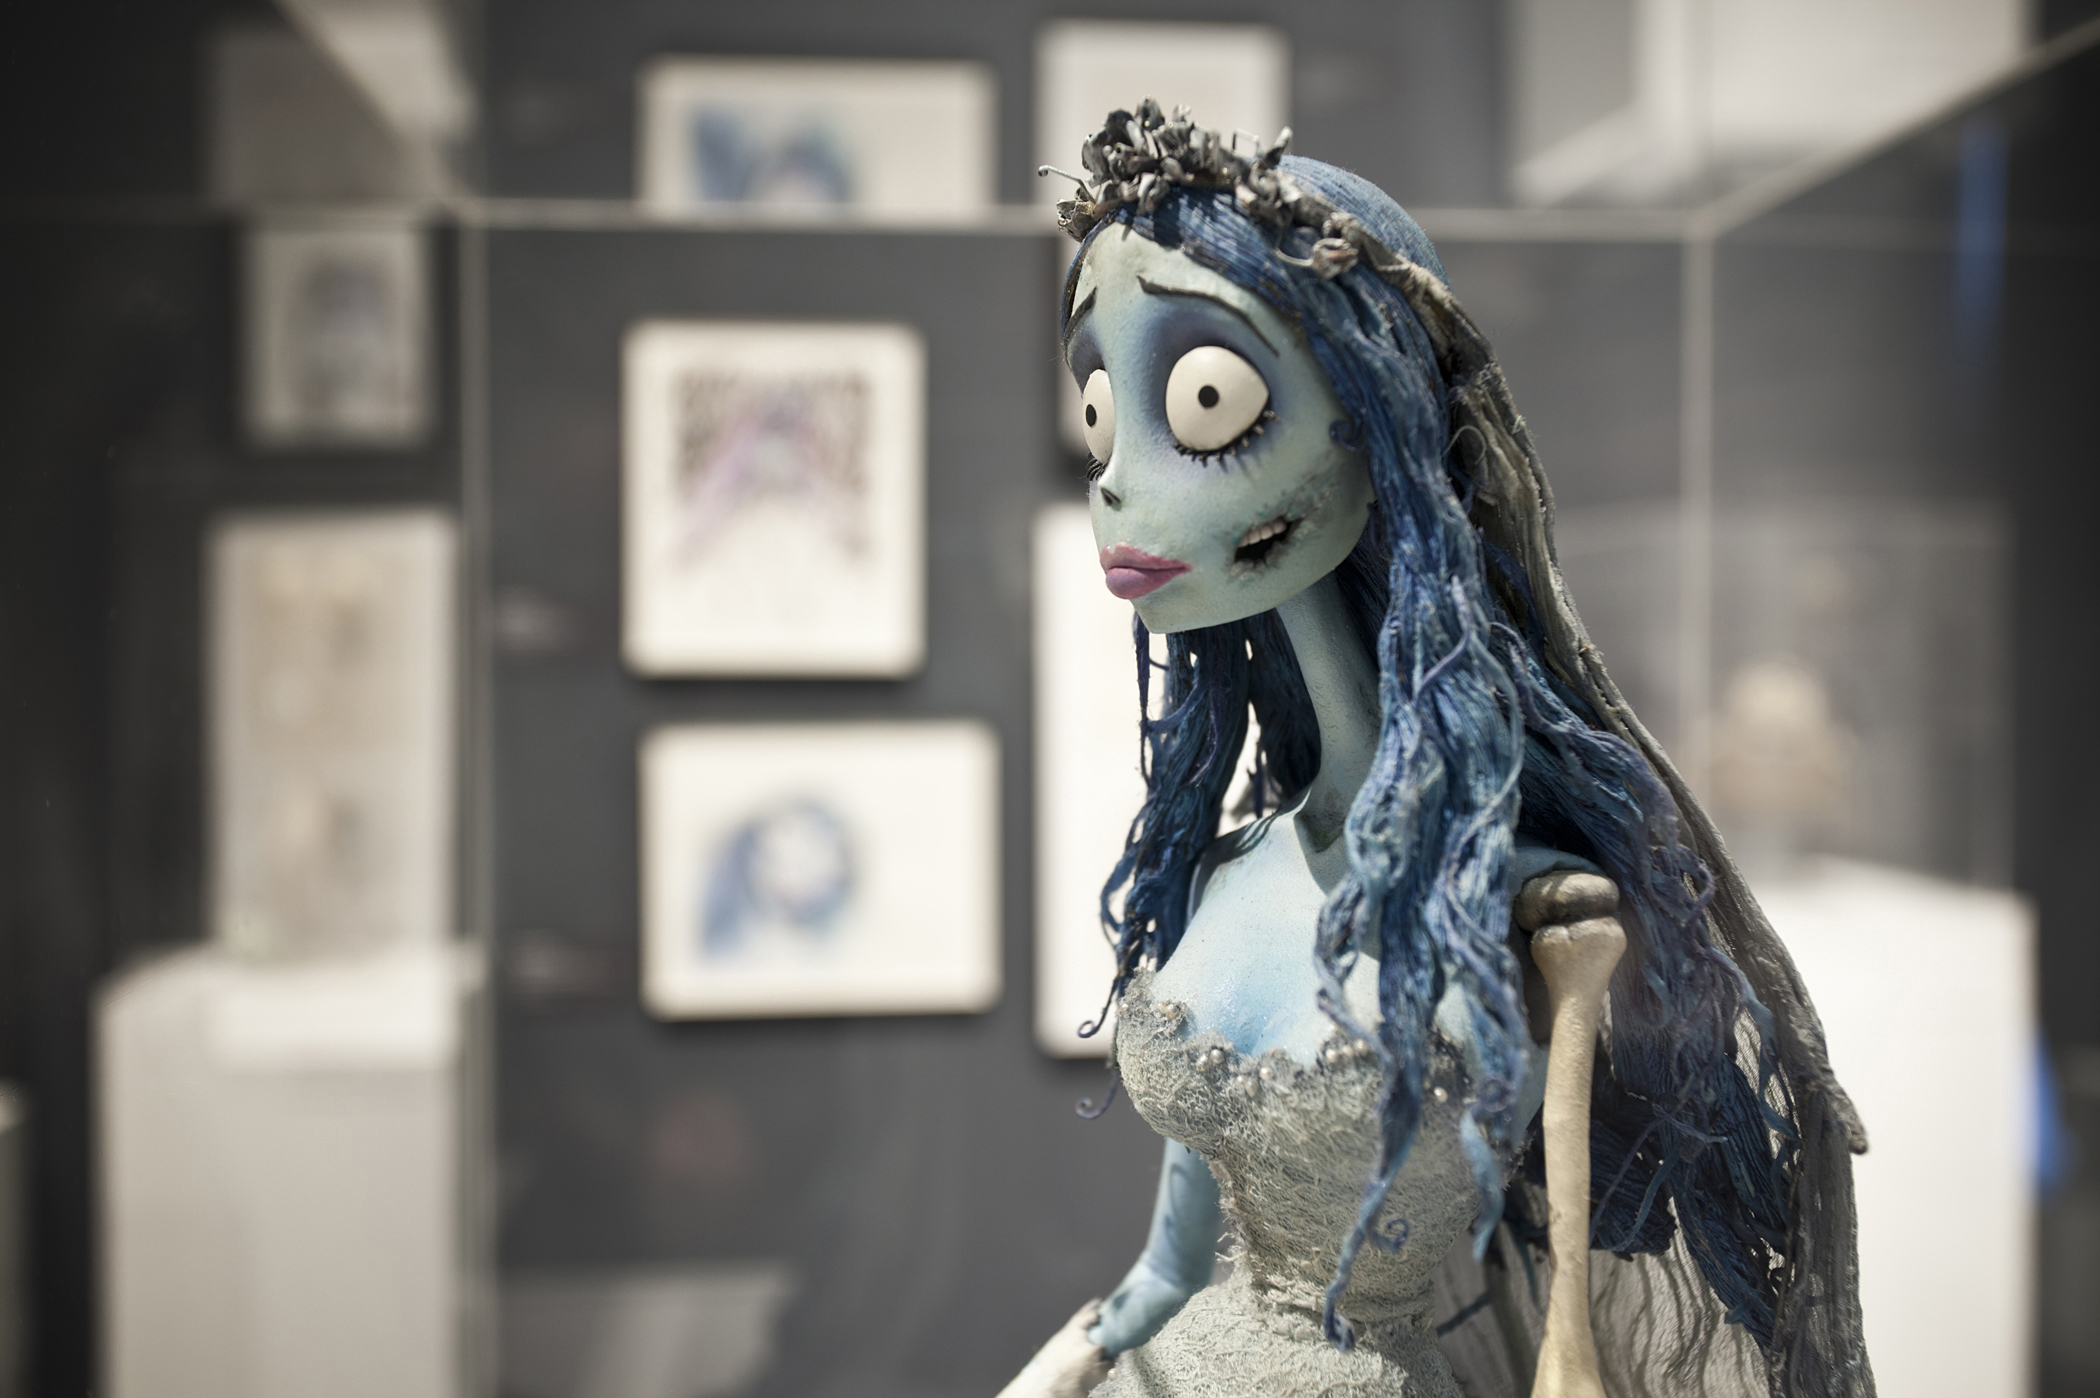 There's a Tim Burton exhibition coming to Hong Kong